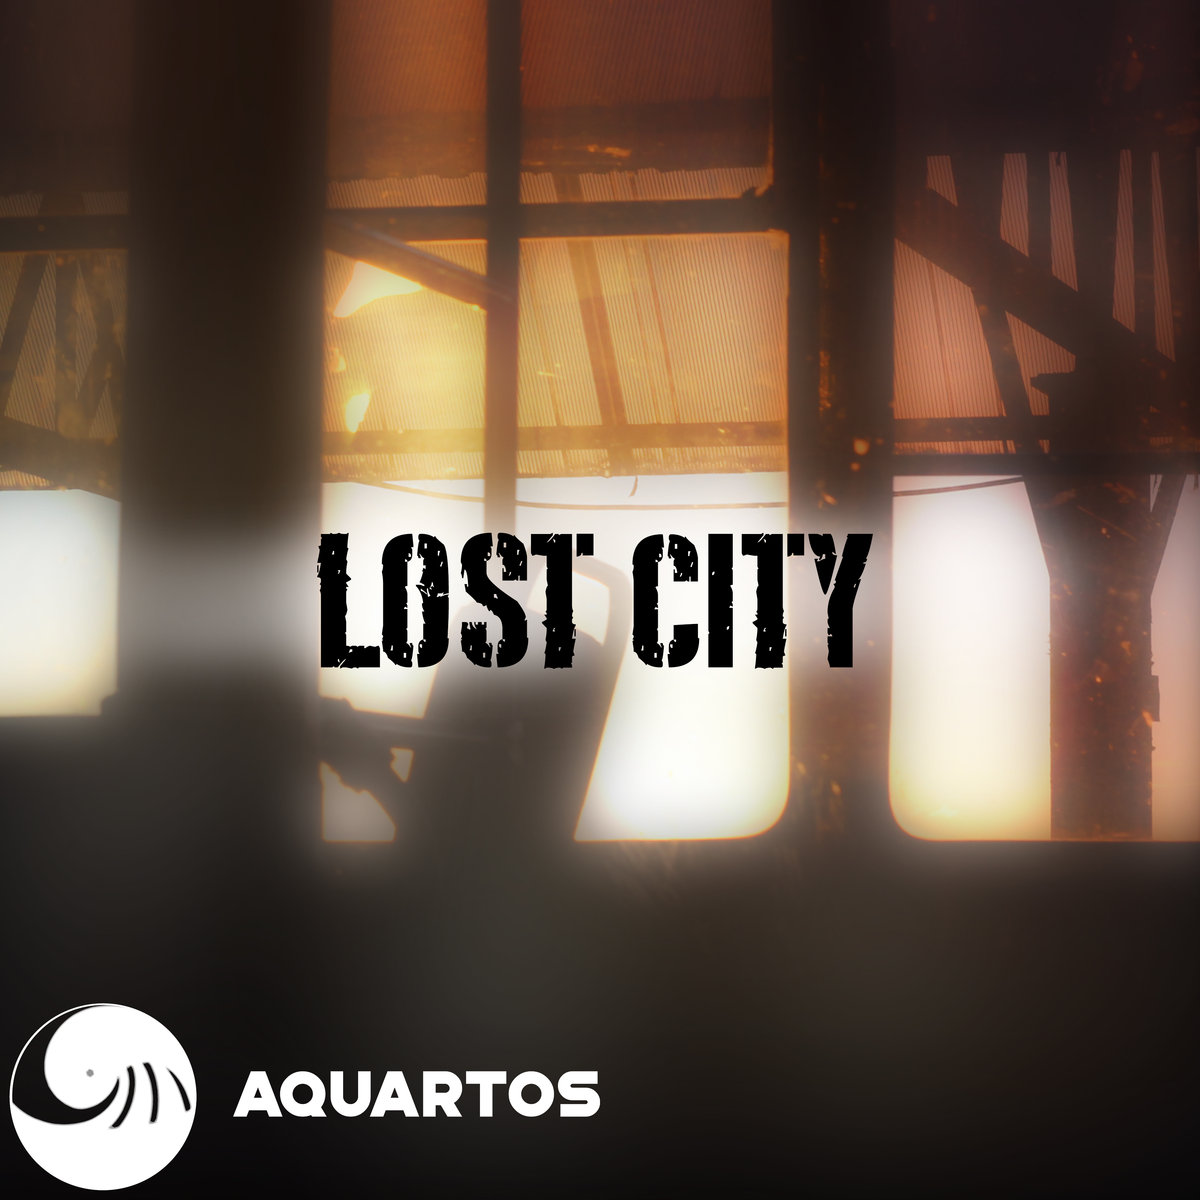 Aquartos - Lost City (artwork faeton music)